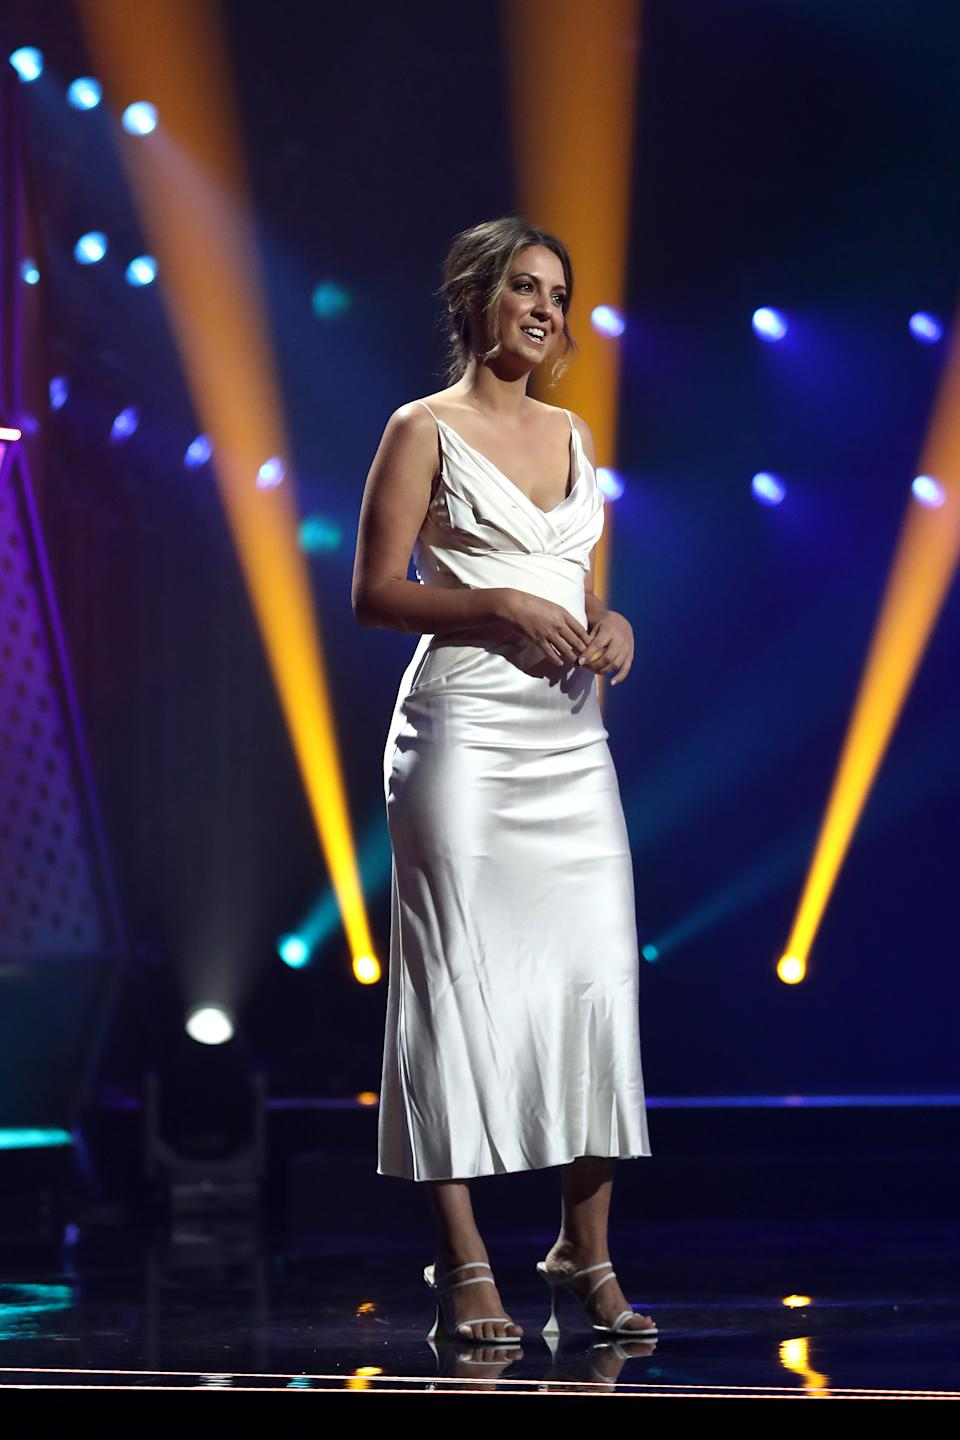 Brooke Boney wears a white slip dress while presenting the ARIA Award for Best Hip Hop Release at the 2020 ARIA Awards at The Star on November 25, 2020 in Sydney, Australia.